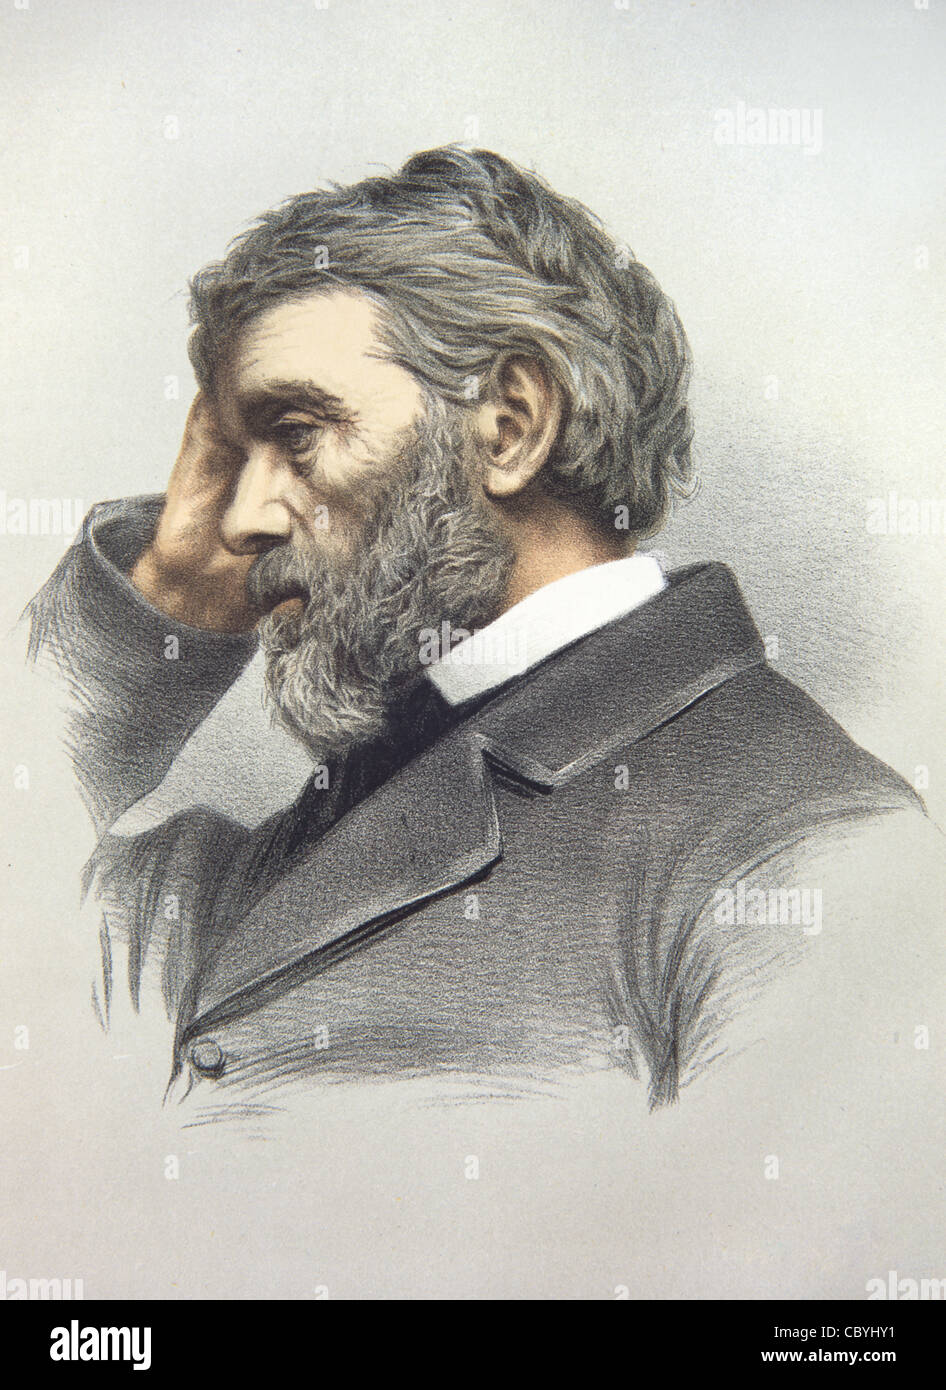 thomas carlyle essays the opera Opera, sex, and other vital  the philosophy of punctuation by paul robinson,  a single page of thomas carlyle, or any nineteenth-century writer,.